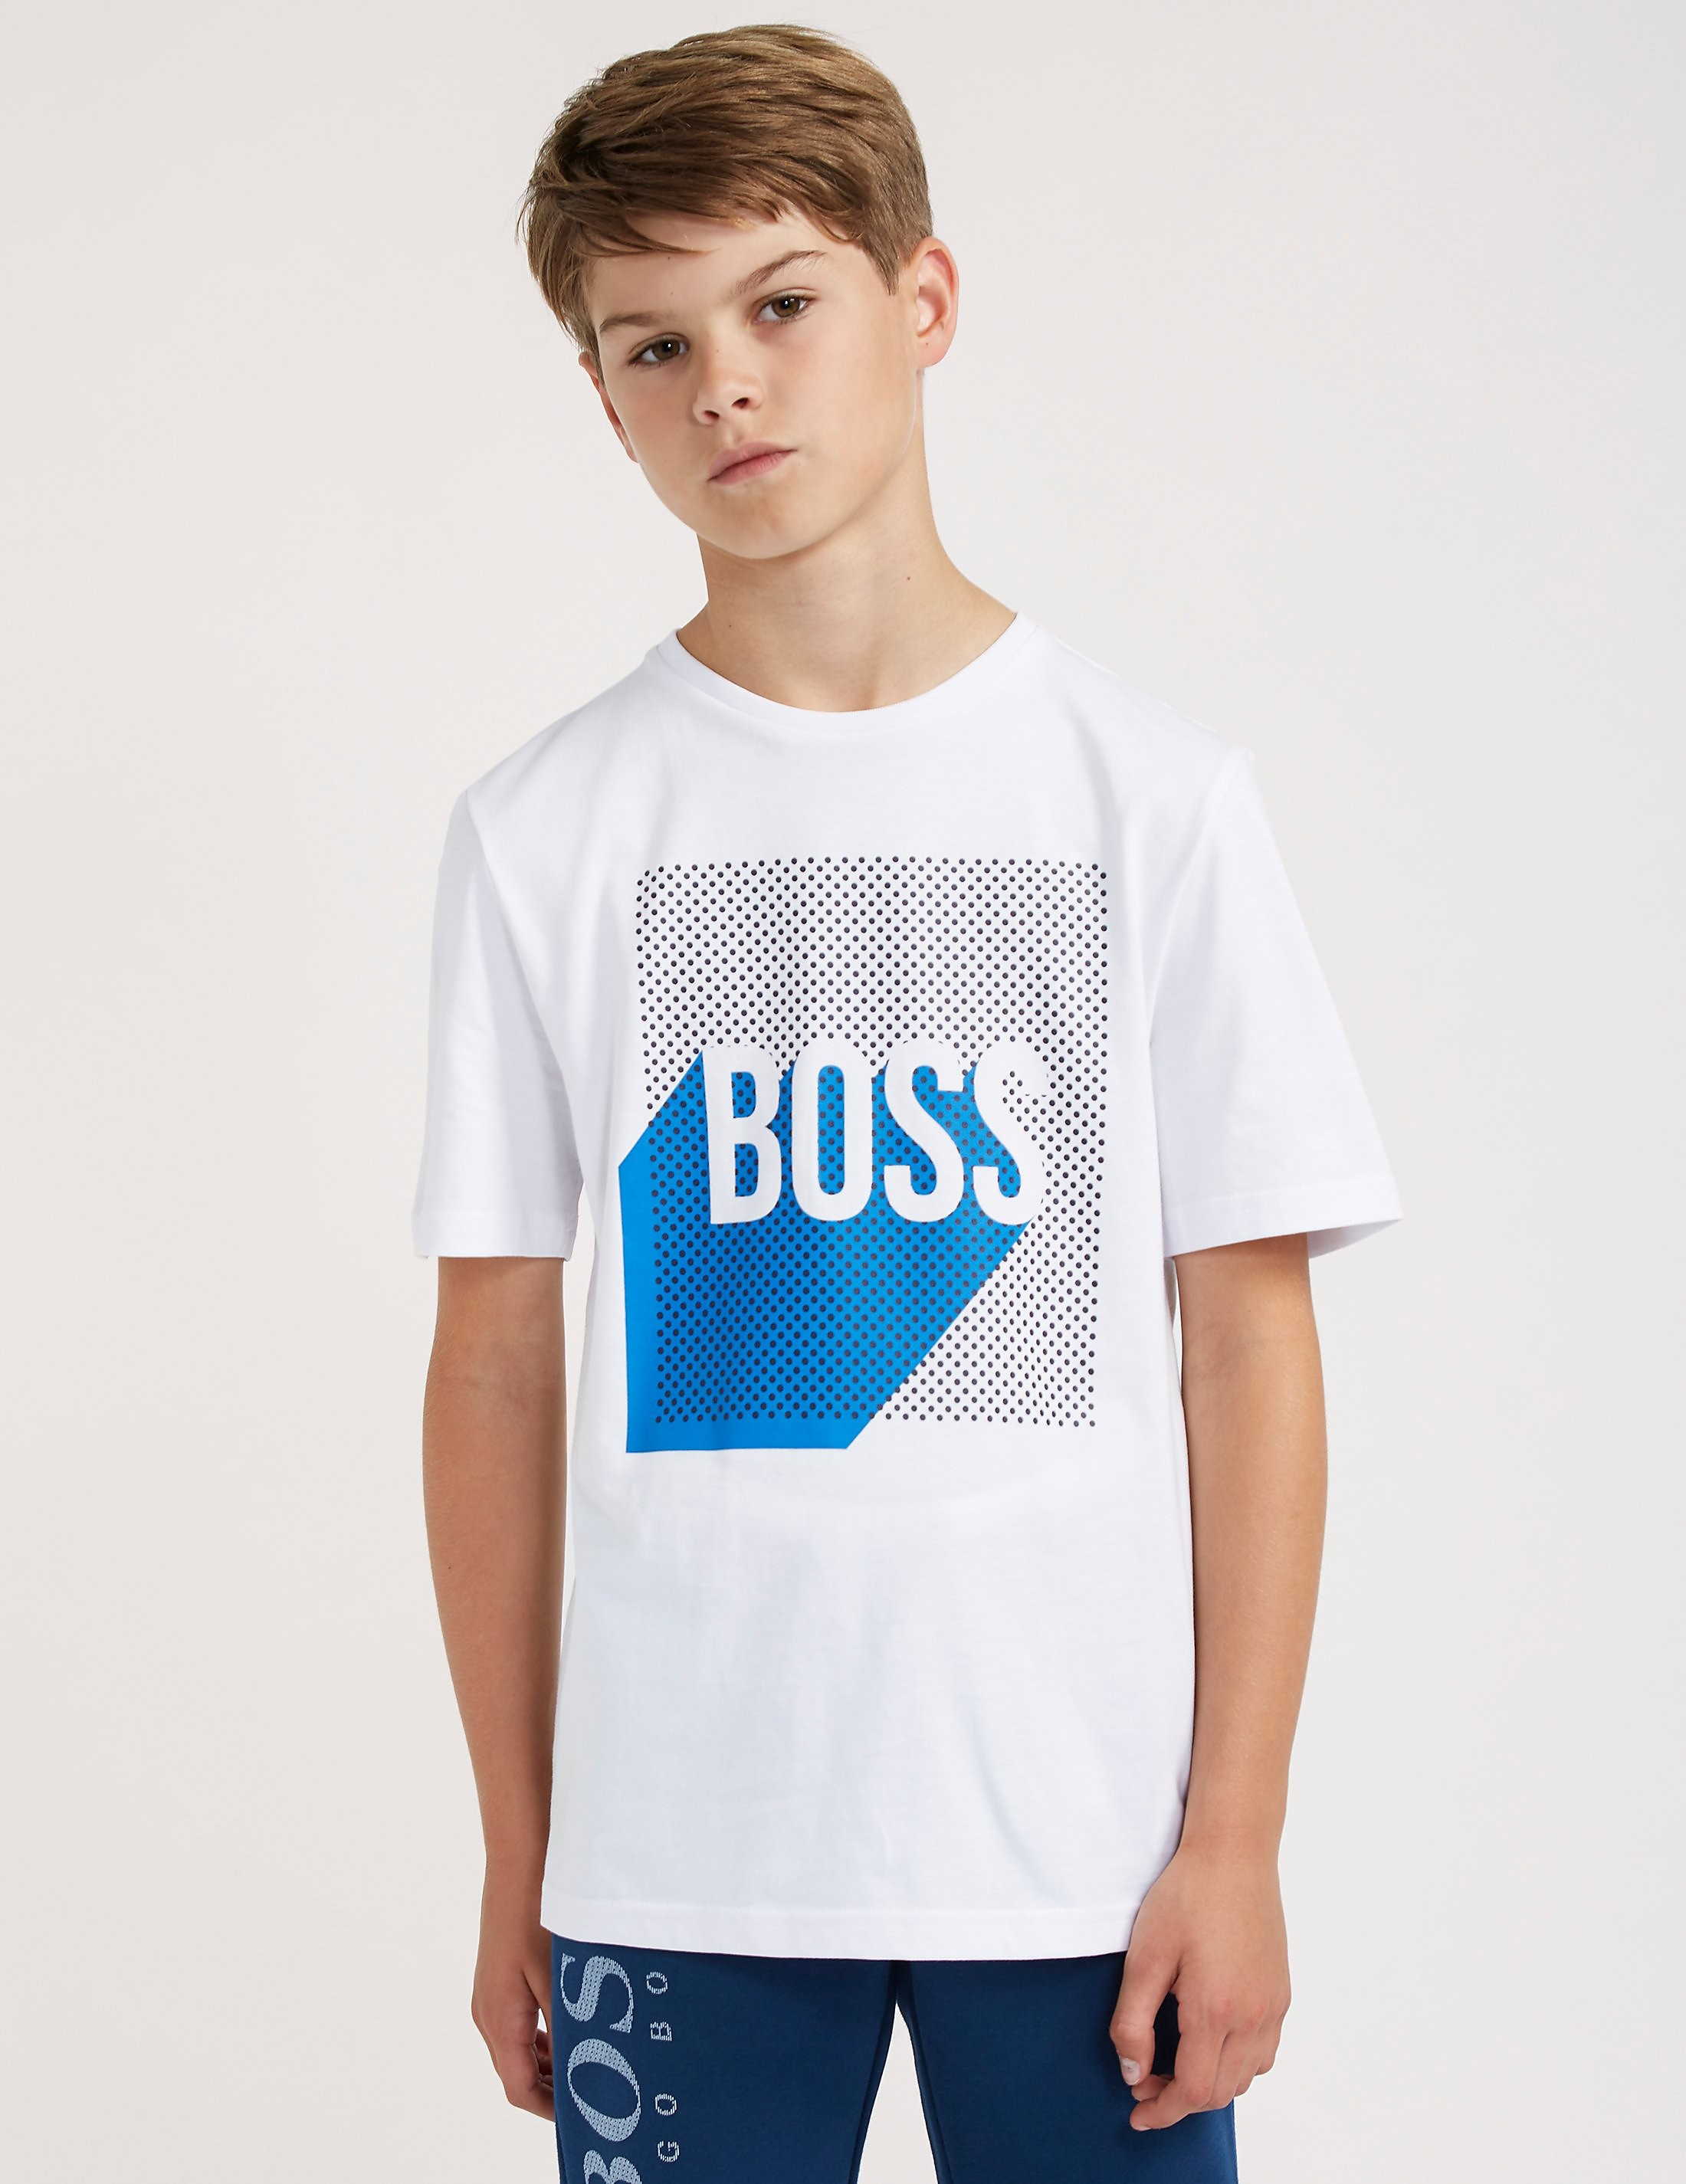 BOSS Polka Dot Short Sleeve T-Shirt